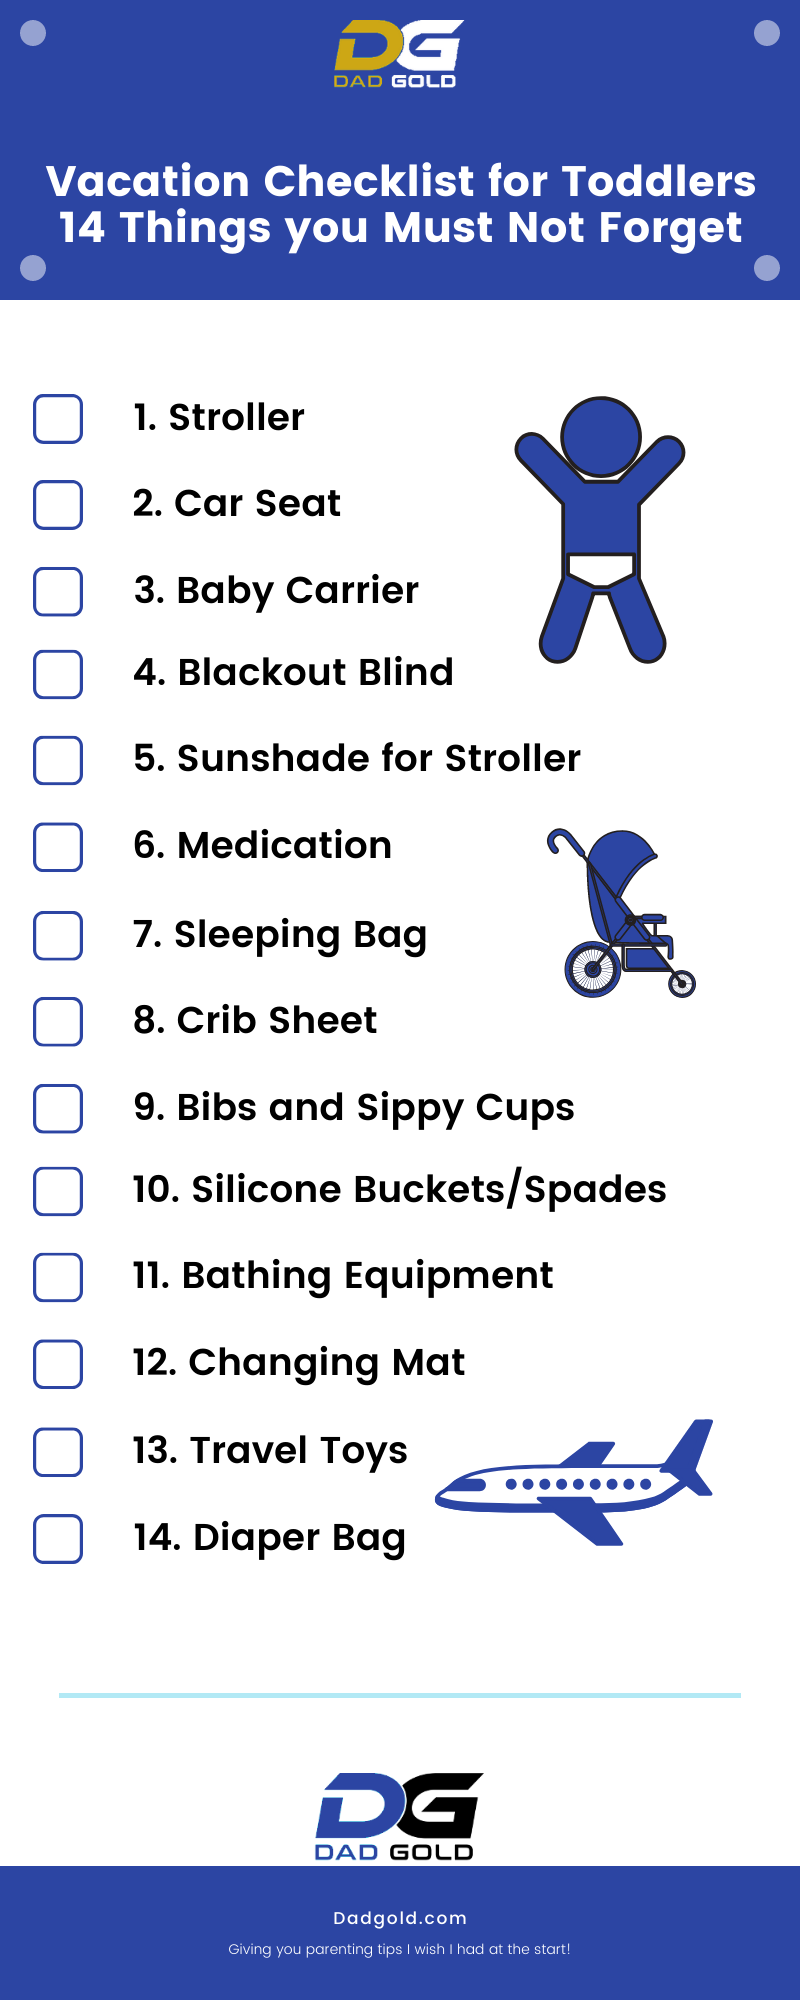 Vacation Checklist for Toddlers 14 Things you Must Not Forget Infographic